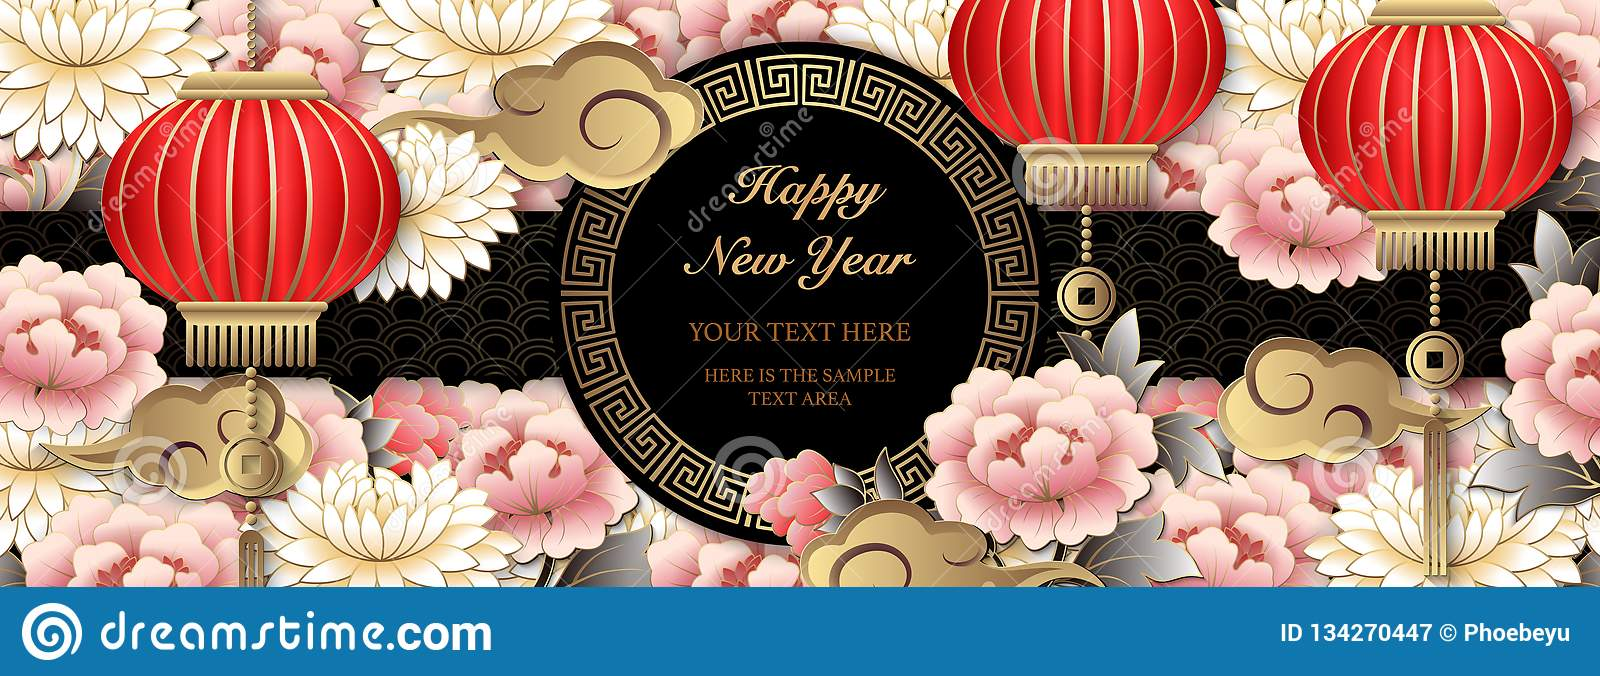 Happy Chinese 2019 new year retro relief art peony flower cloud lantern and lattice frame